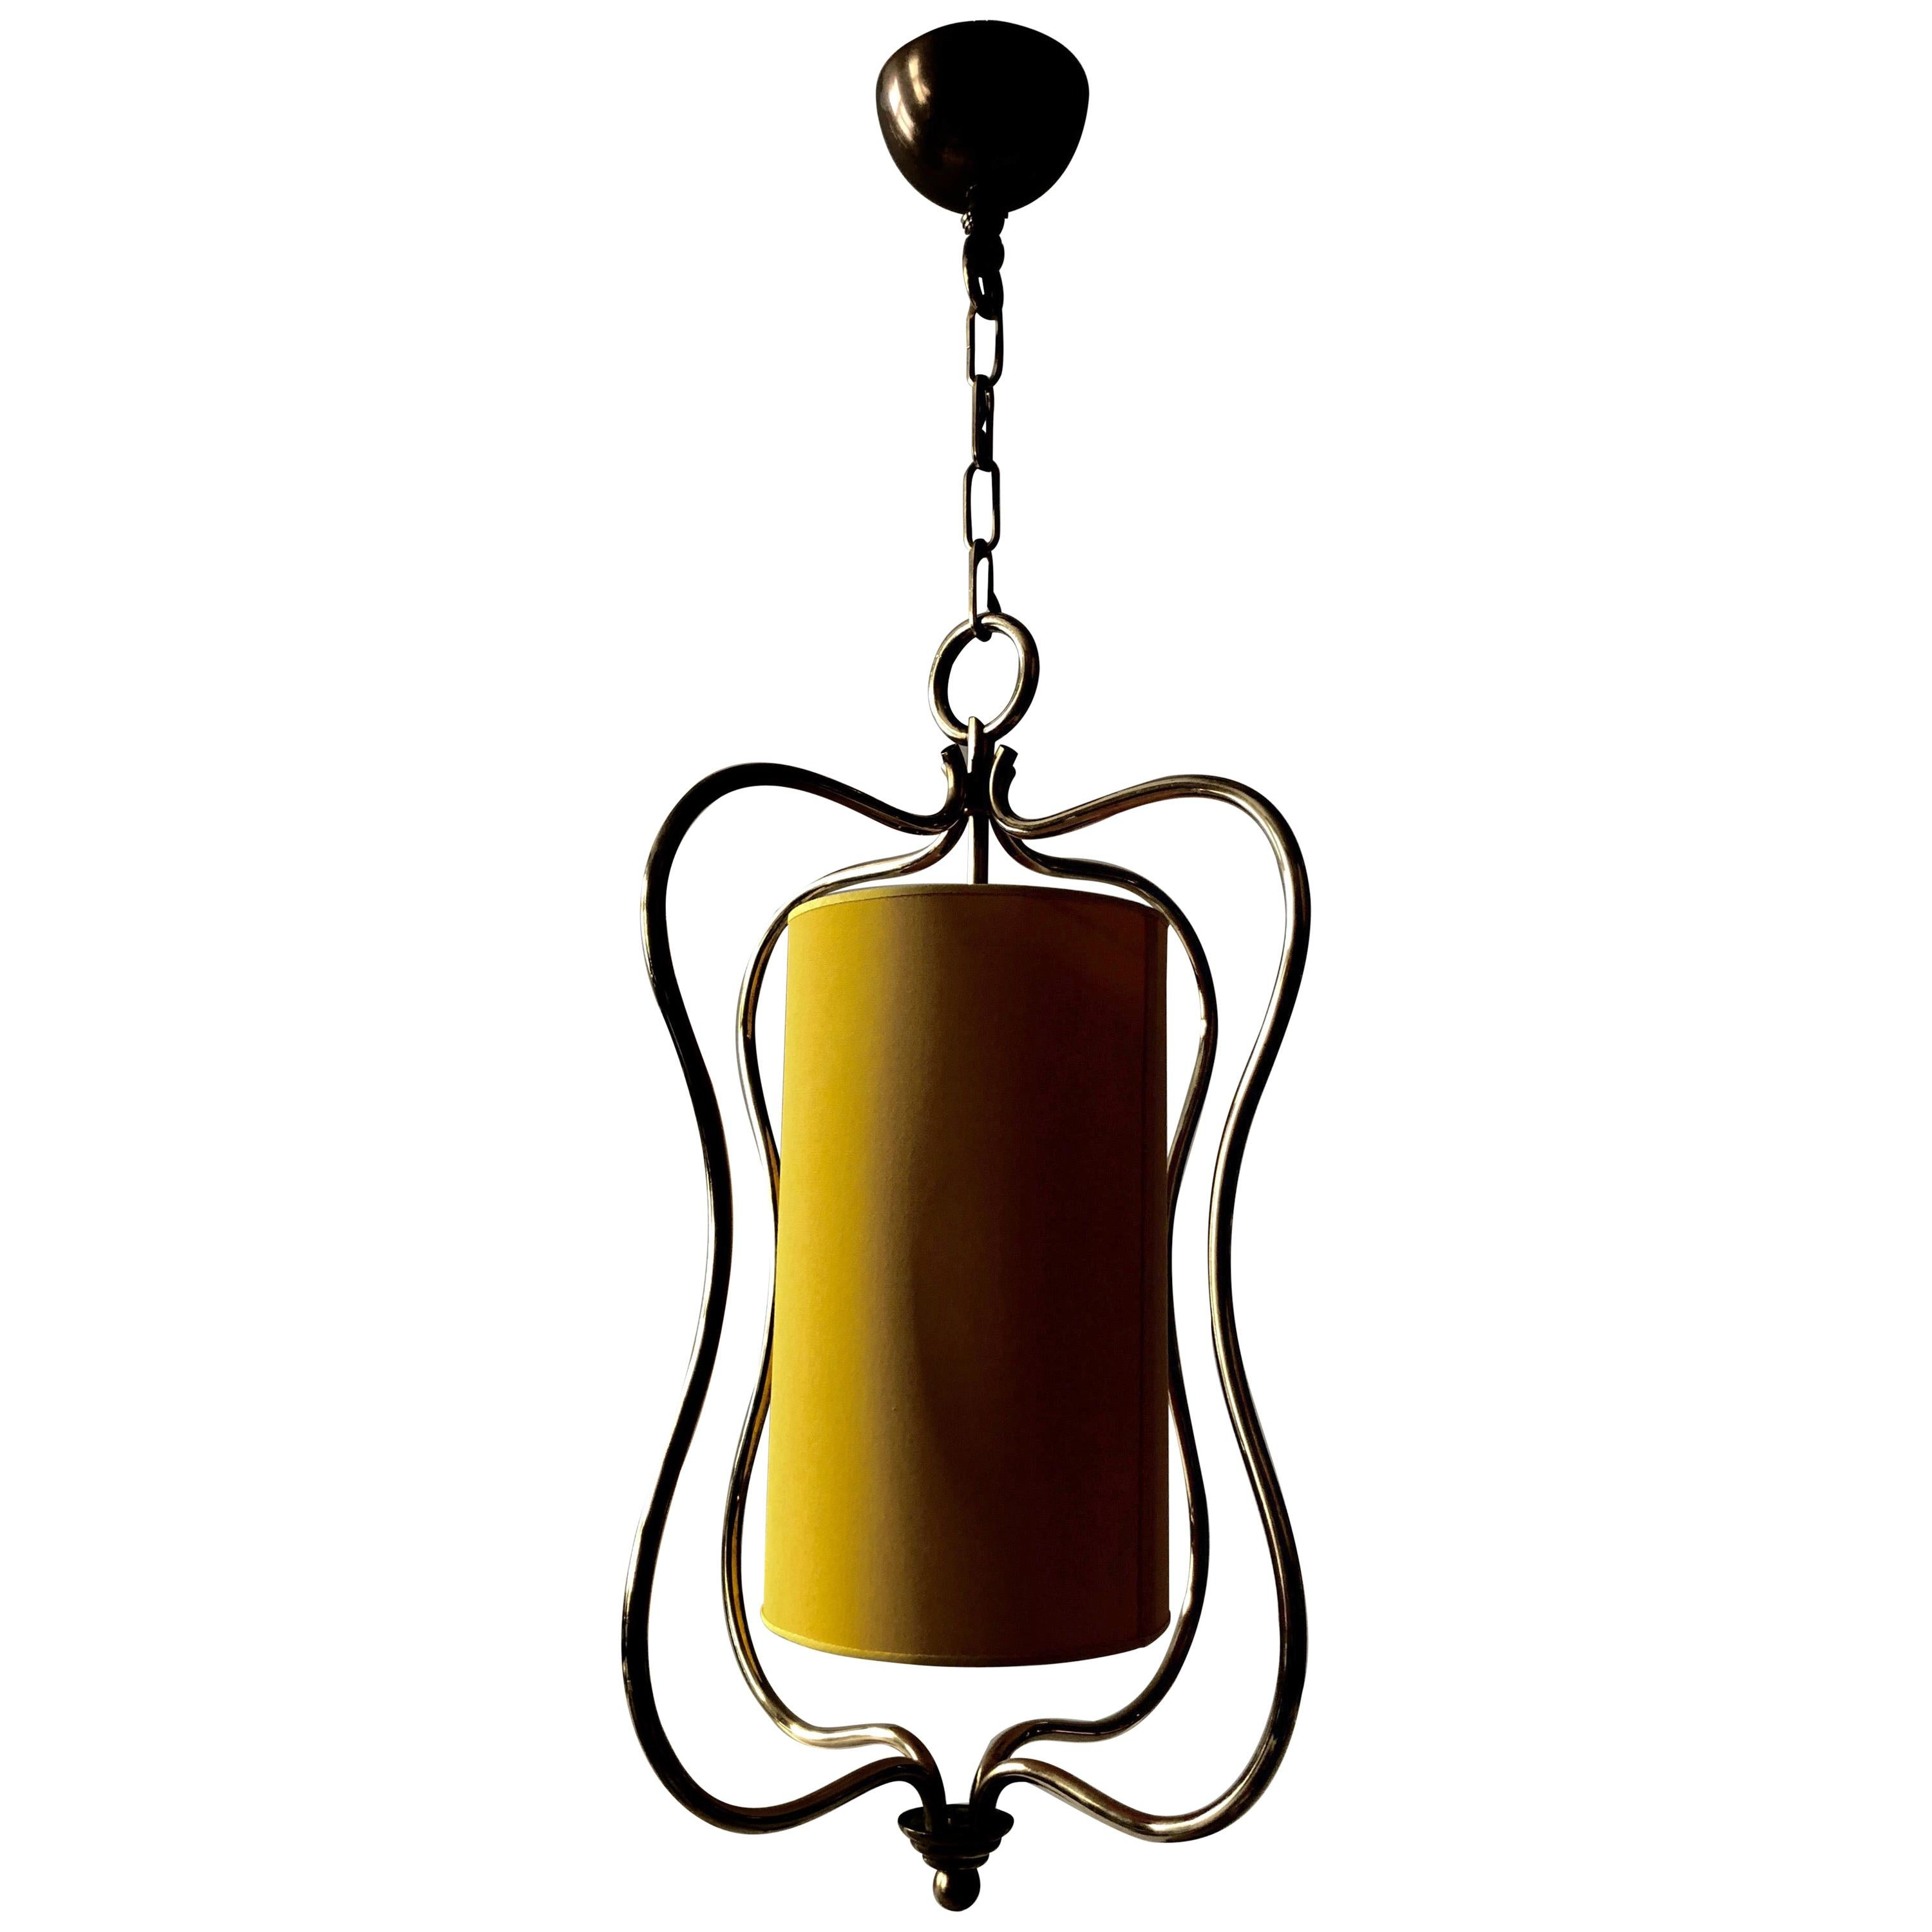 Ceiling Lamp in Brass with Yellow Shade in a Style from Hollywood Regency